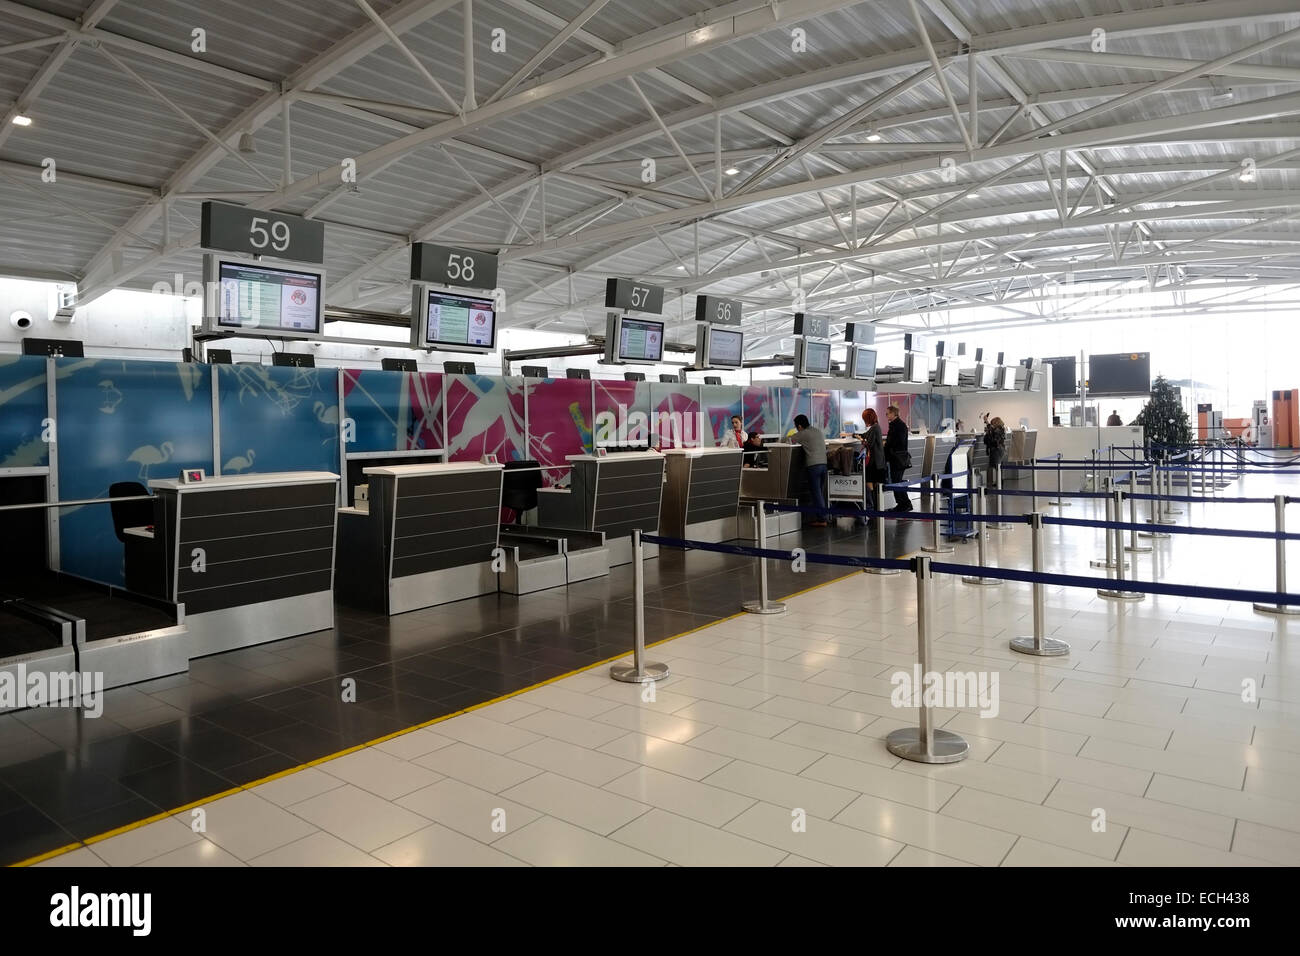 Check in counters in Larnaca International Airport Cyprus - Stock Image